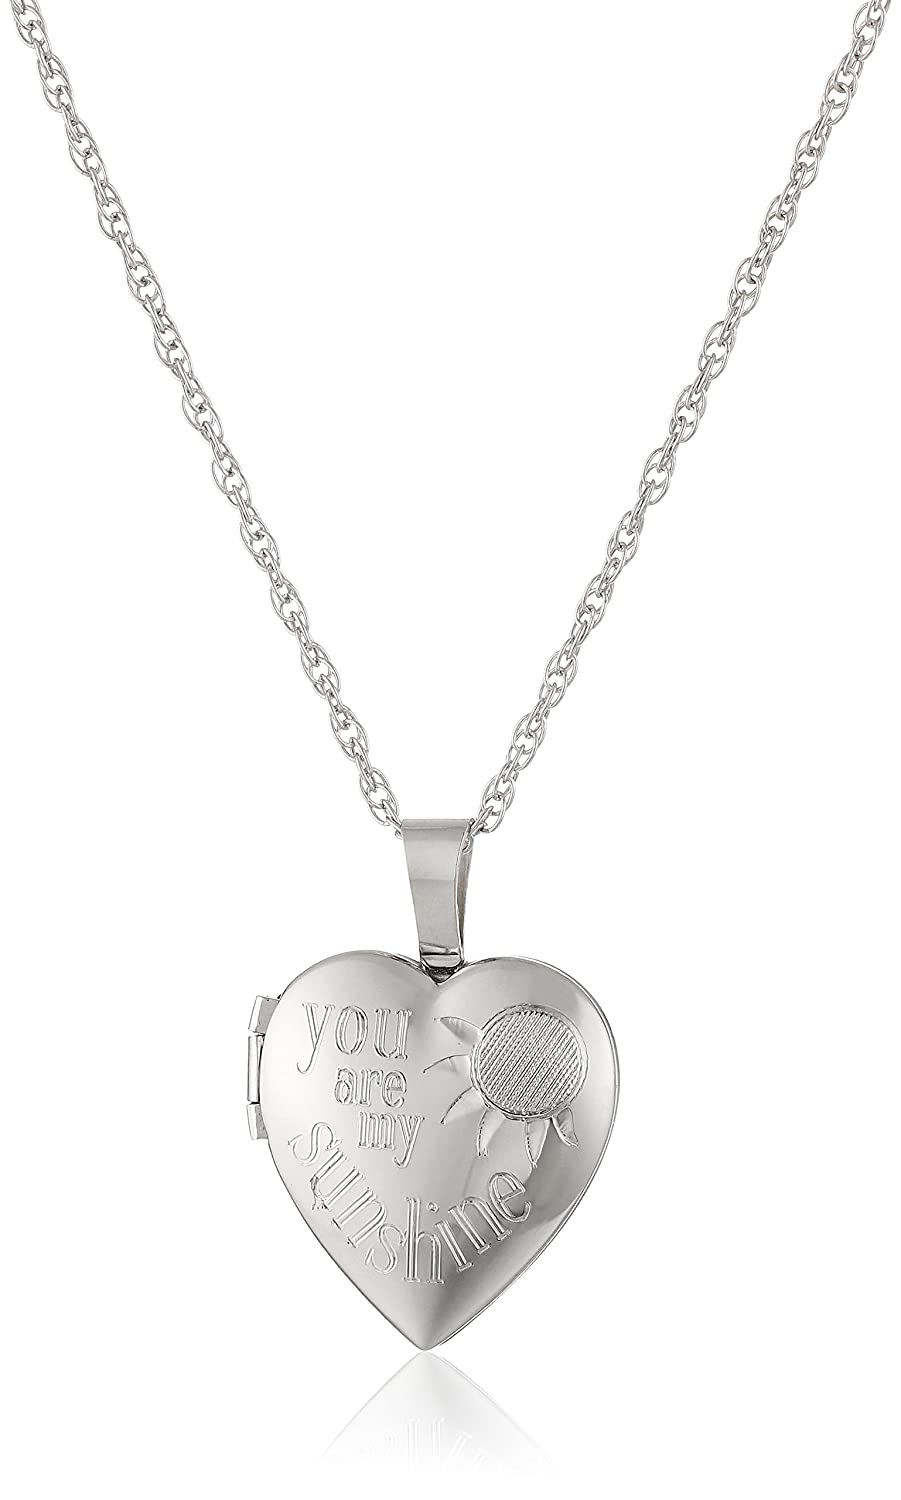 Ladies' Sterling Silver Heart Pendant with You are My Sunshine Locket Necklace, 18 18 Amazon Collection AMZ918F